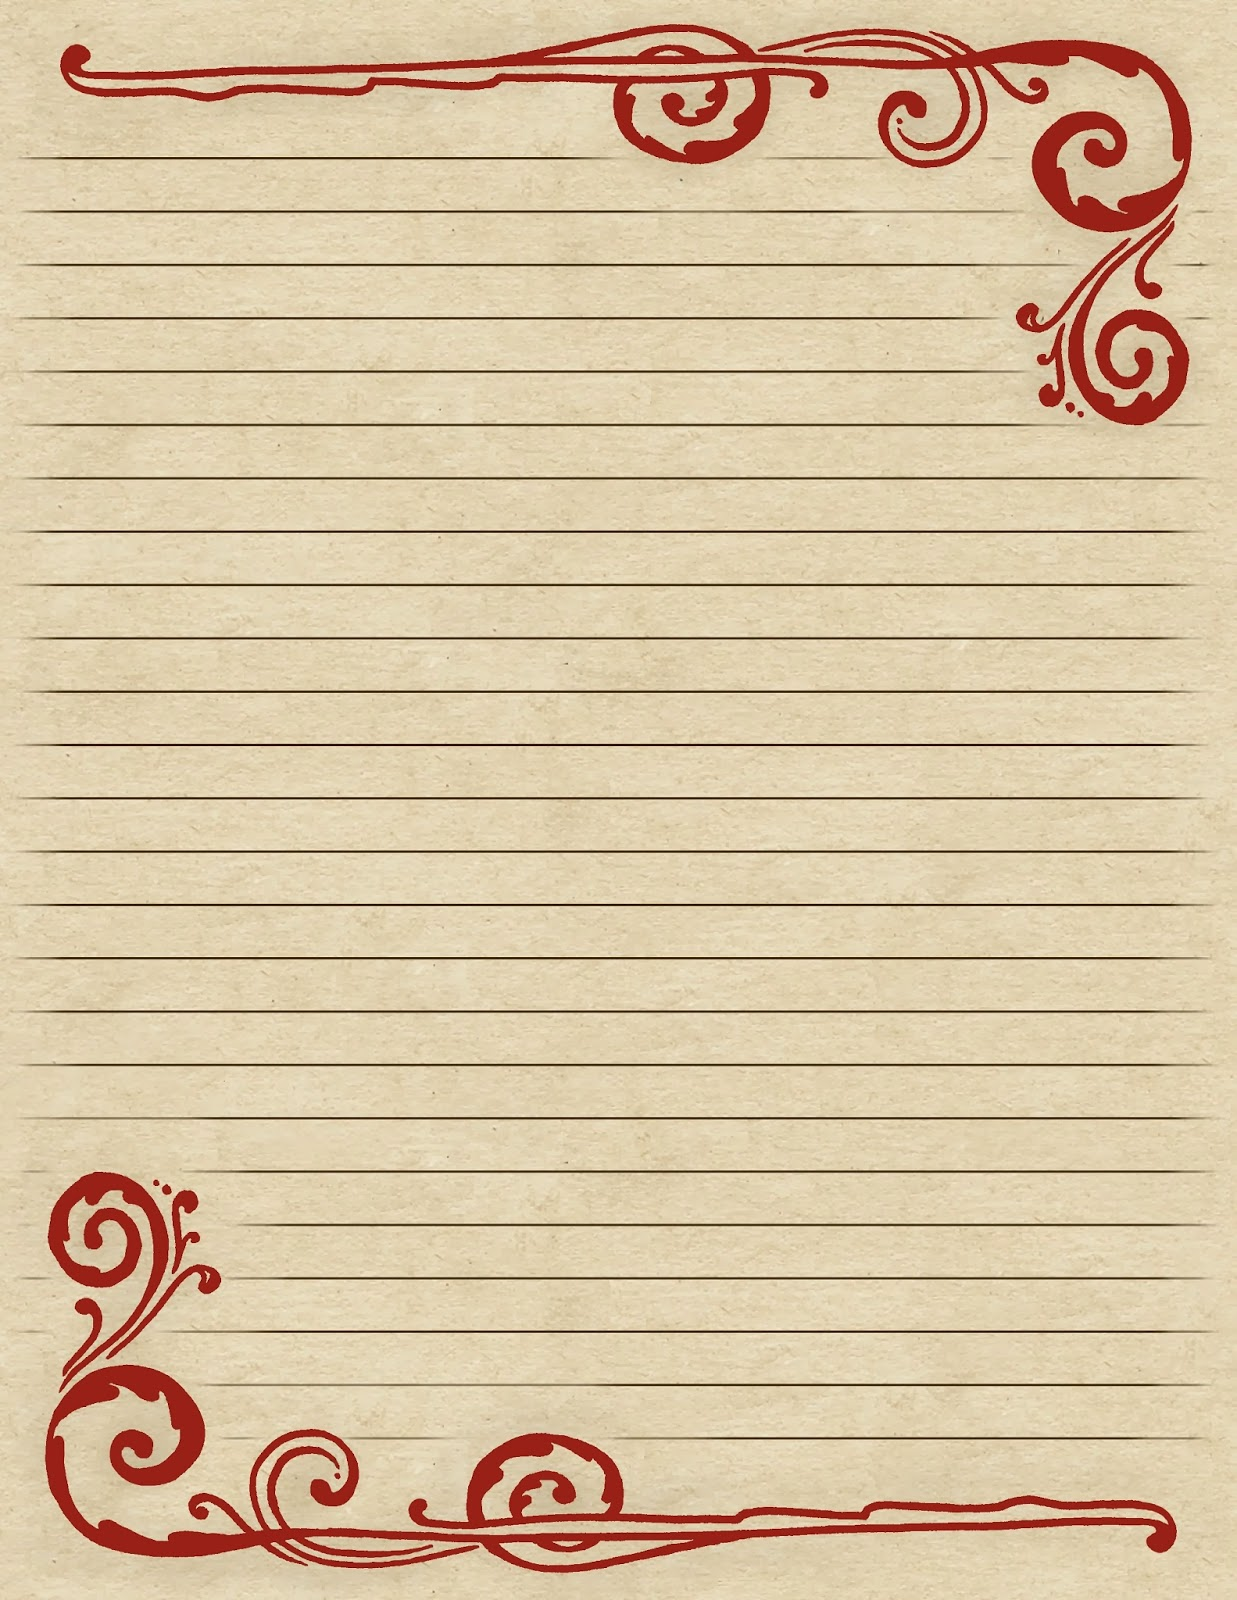 I Used The Aged Background From An Image On The Old Design Shop To Create  The Paper Texture.  Lined Papers